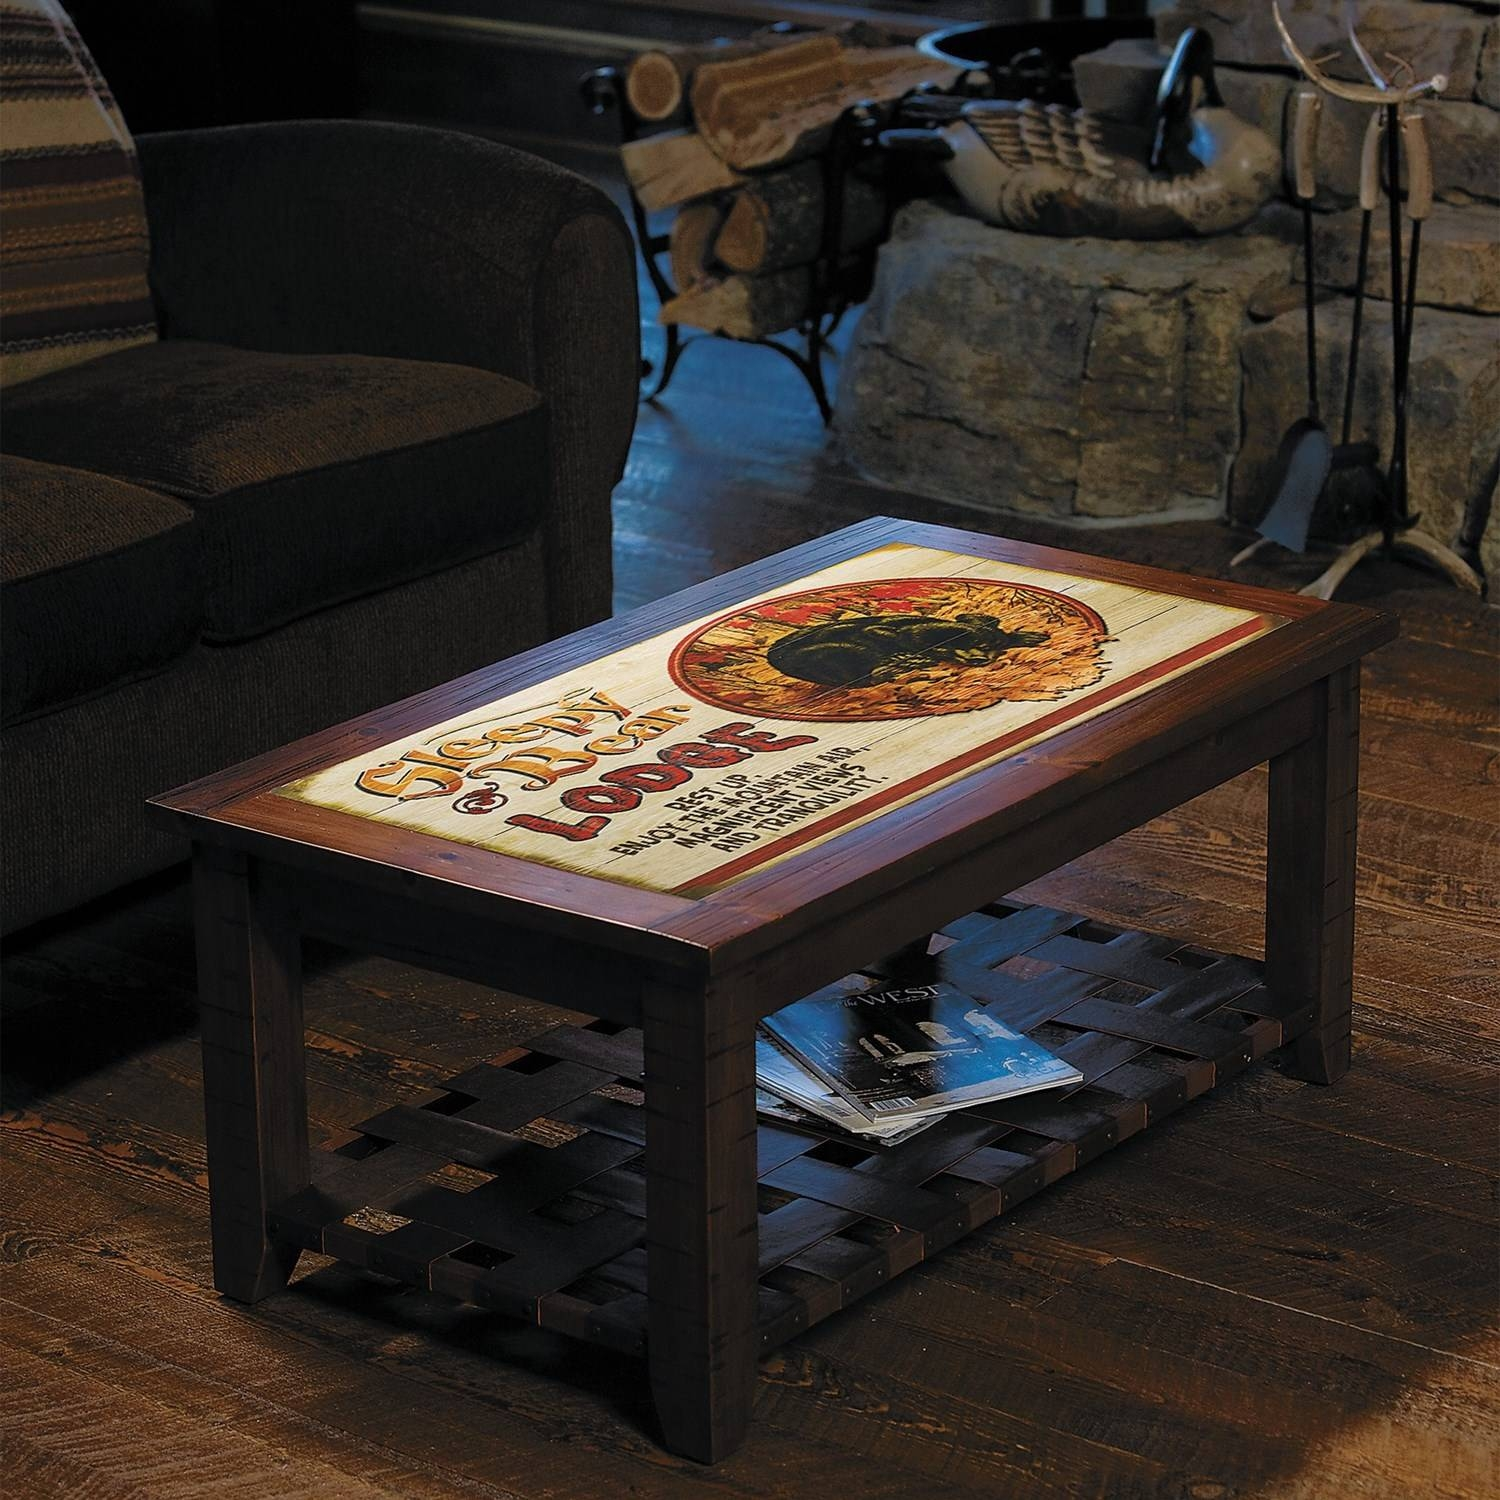 Big Coffee Tables: What Are They? — Coffee Tables Ideas throughout Big Coffee Tables (Image 6 of 30)